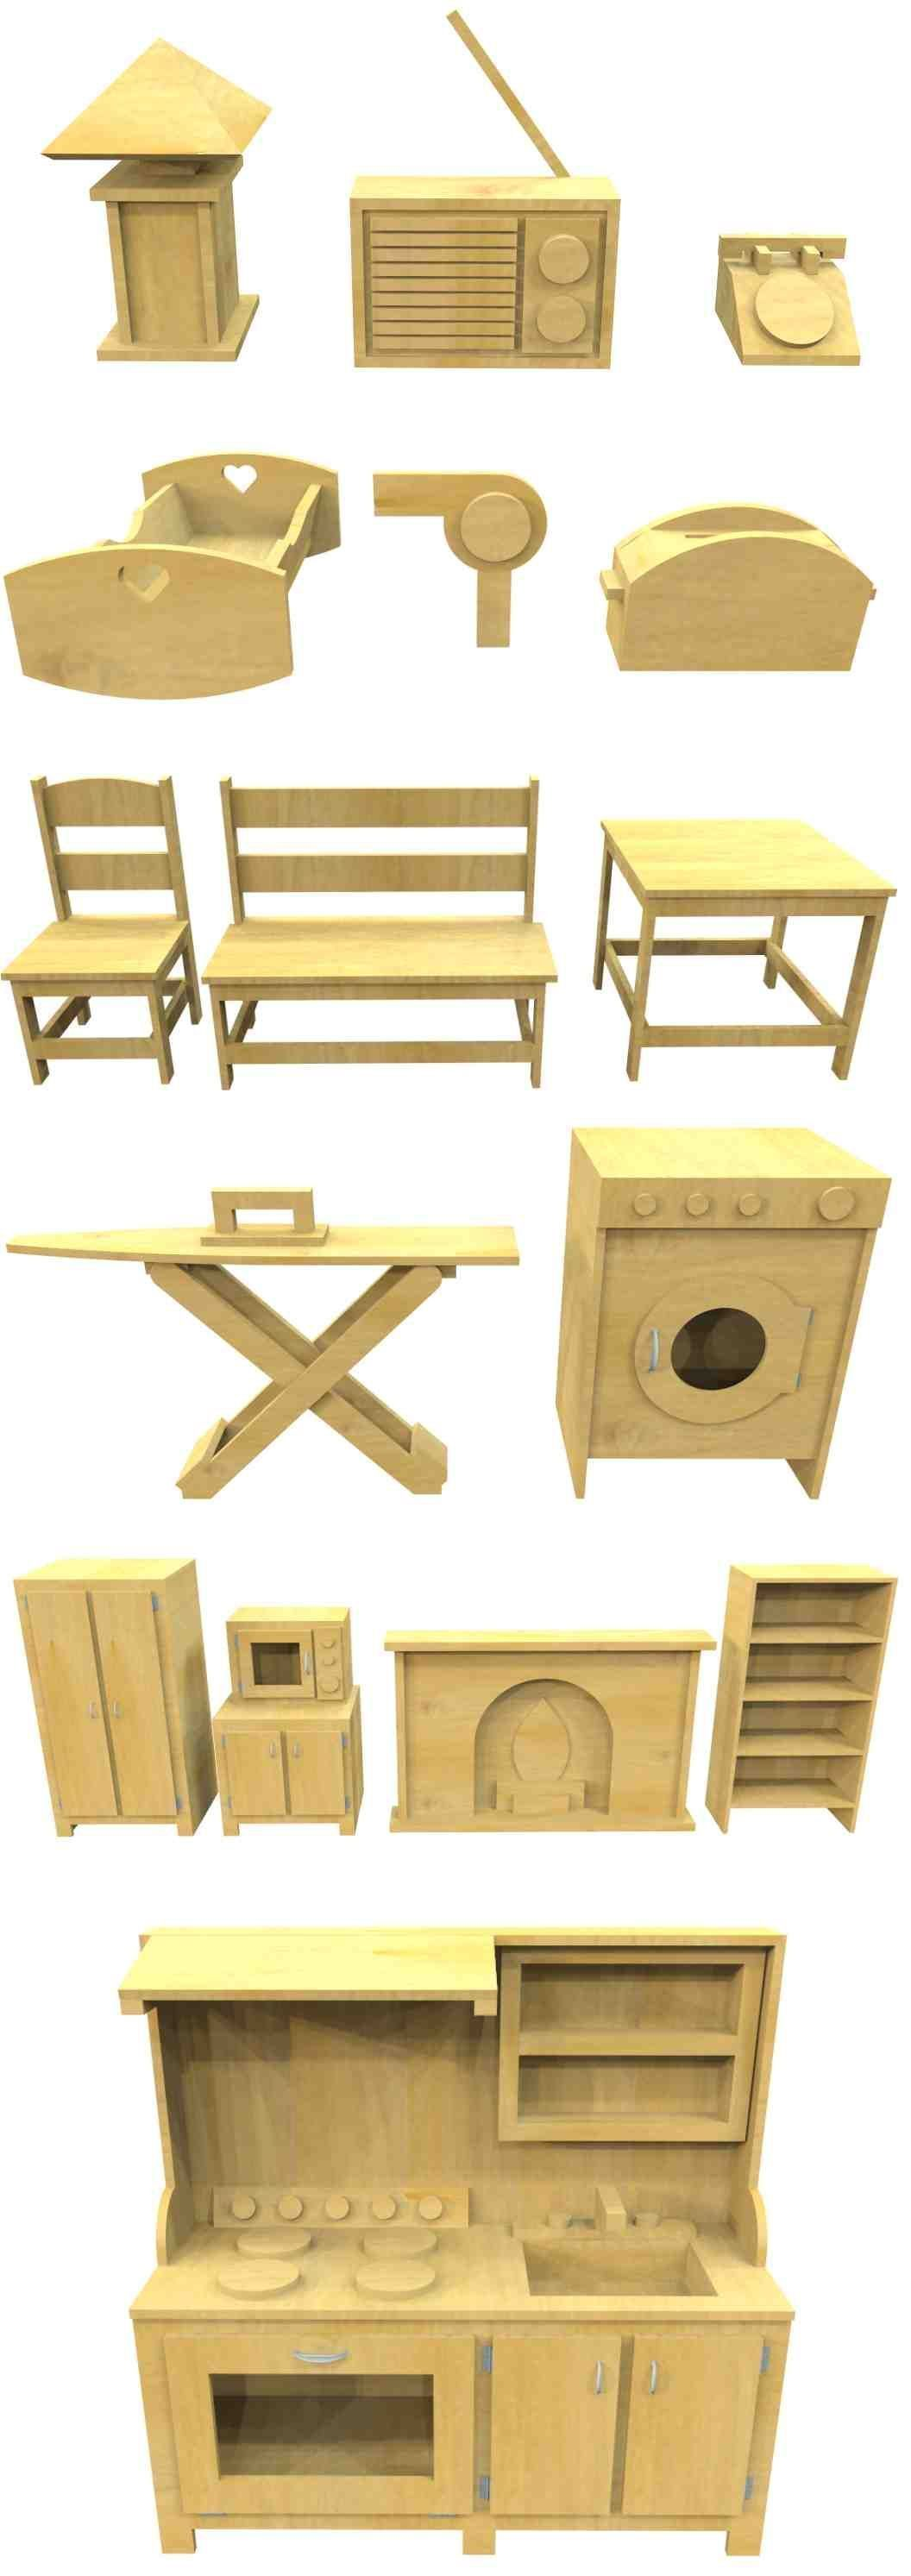 24 Wooden Play Items You Can Build To Fill Up